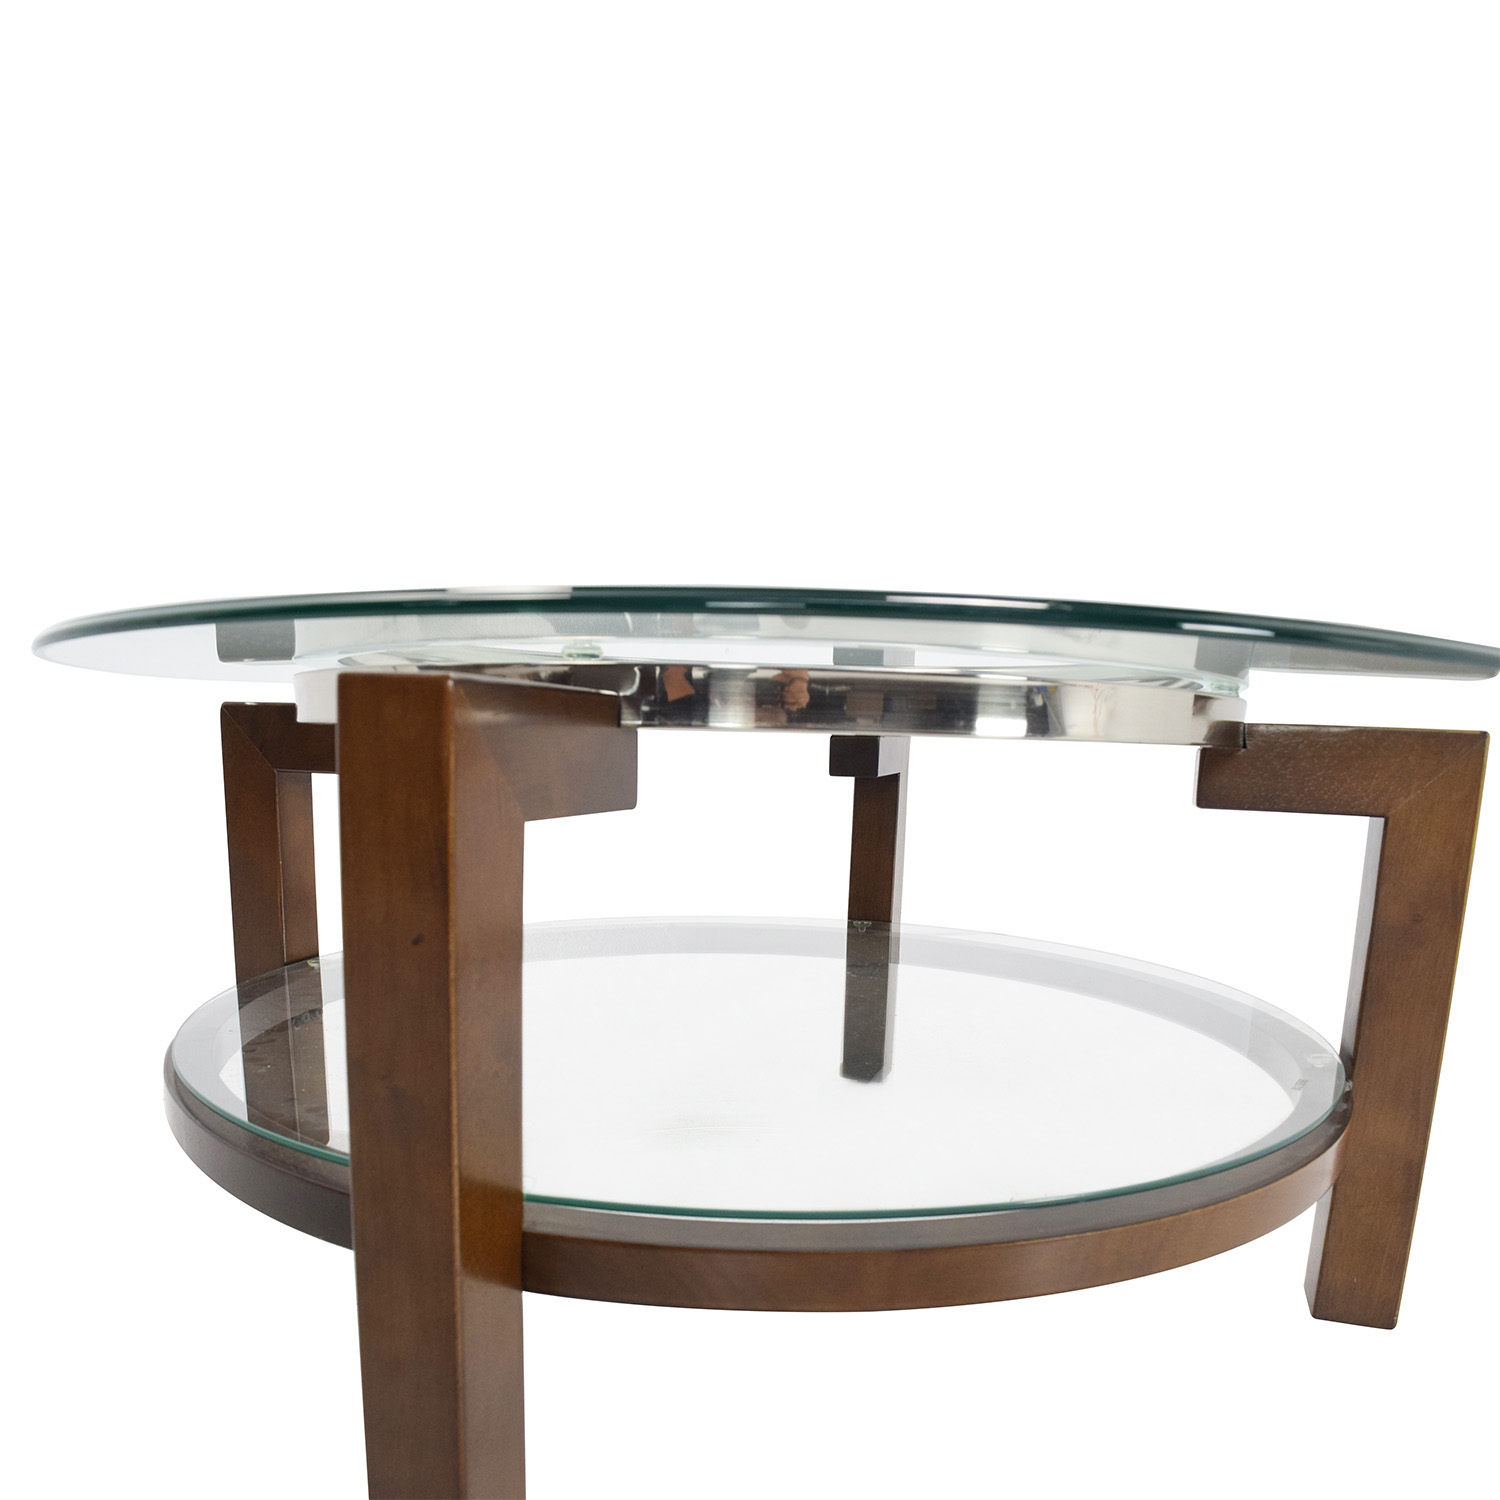 88 off macy 39 s macy 39 s glass top coffee table tables Coffee tables glass top